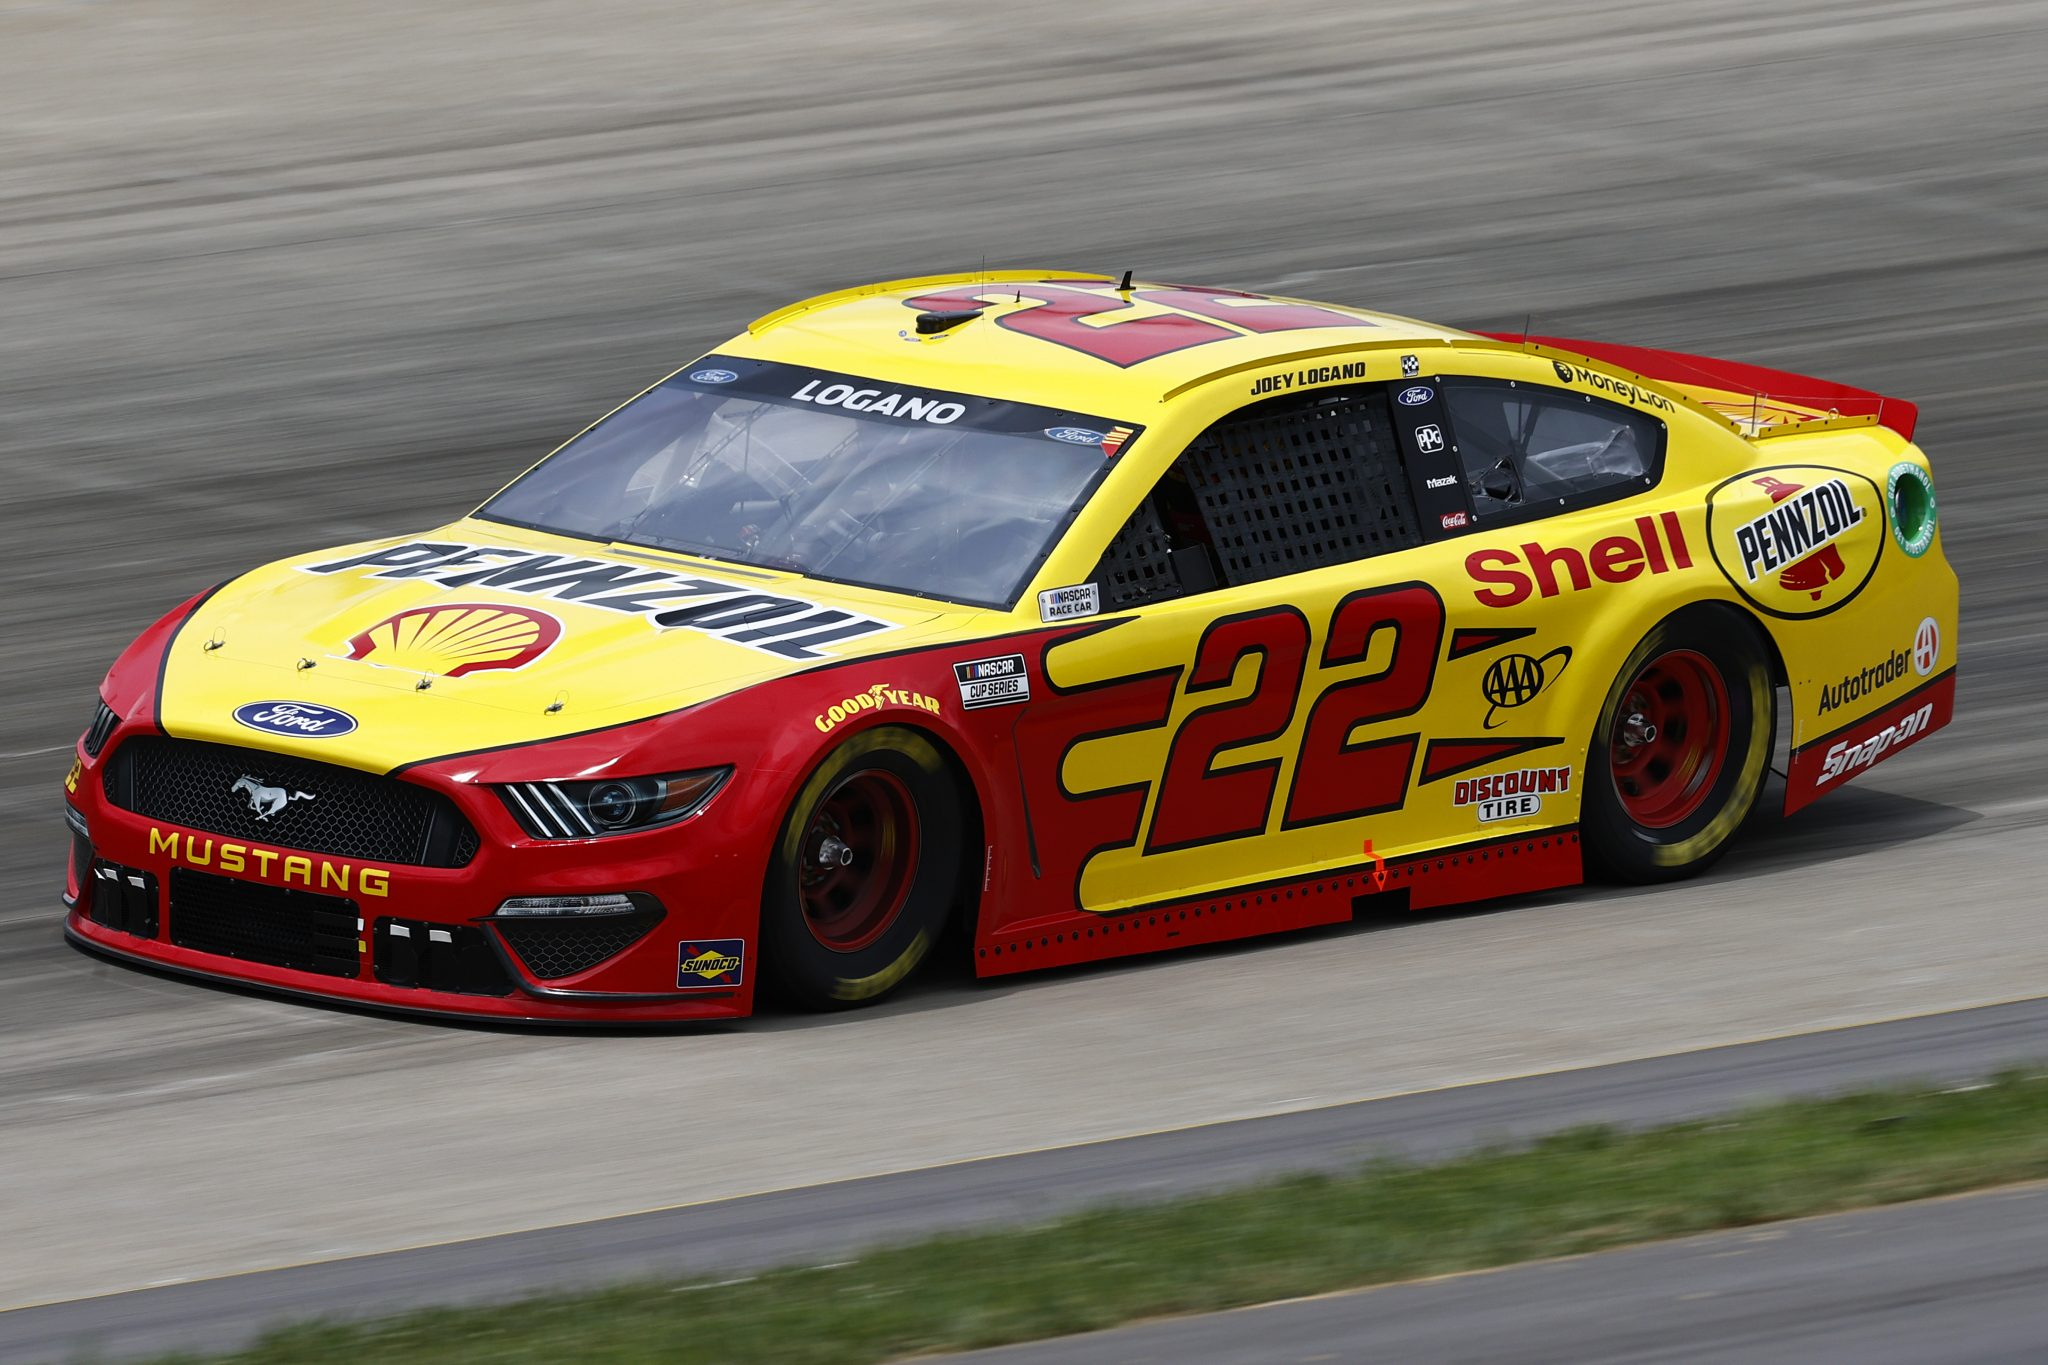 LEBANON, TENNESSEE - JUNE 19: Joey Logano, driver of the #22 Shell Pennzoil Ford, drives during practice for the NASCAR Cup Series Ally 400 at Nashville Superspeedway on June 19, 2021 in Lebanon, Tennessee. (Photo by Jared C. Tilton/Getty Images) | Getty Images